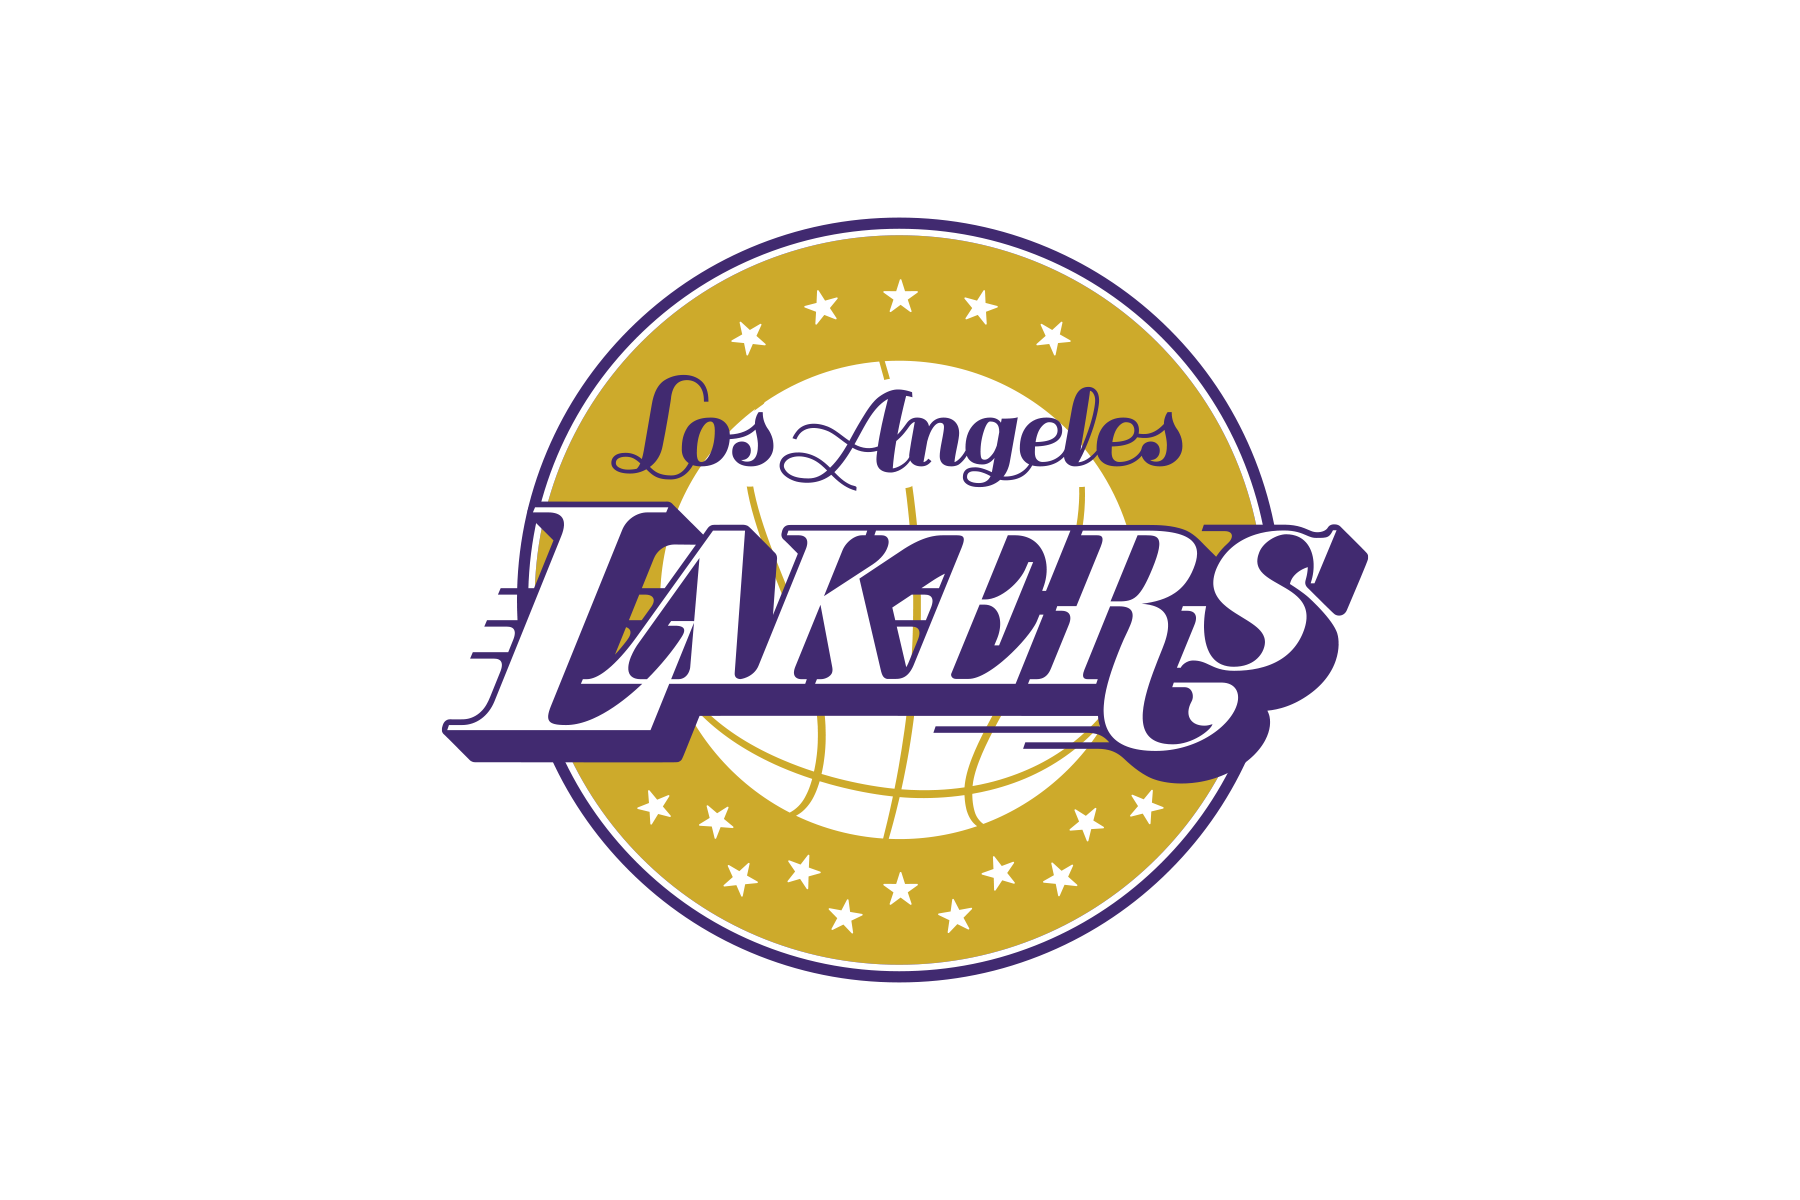 Los Angeles Lakers (@Lakers).